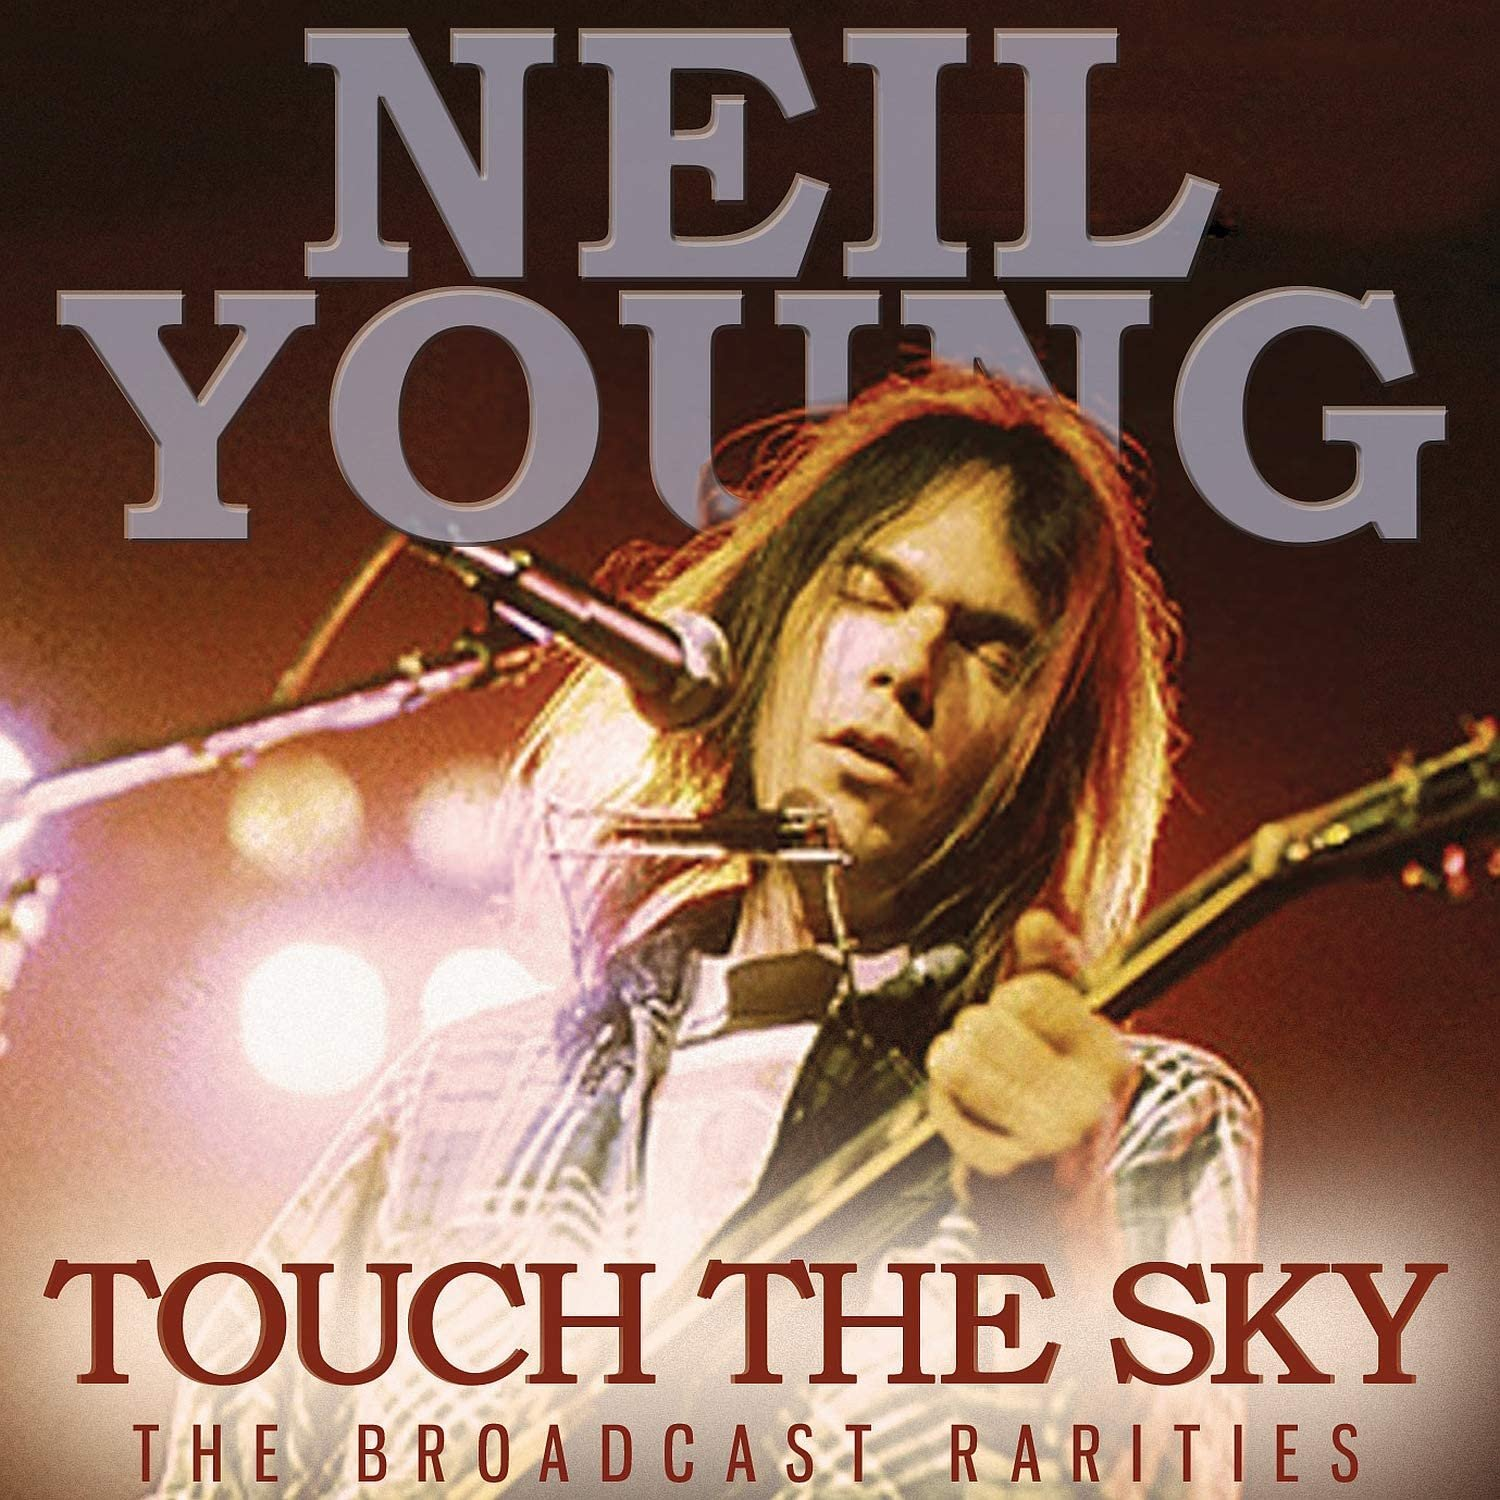 Neil Young - Touch The Sky (2020) CD